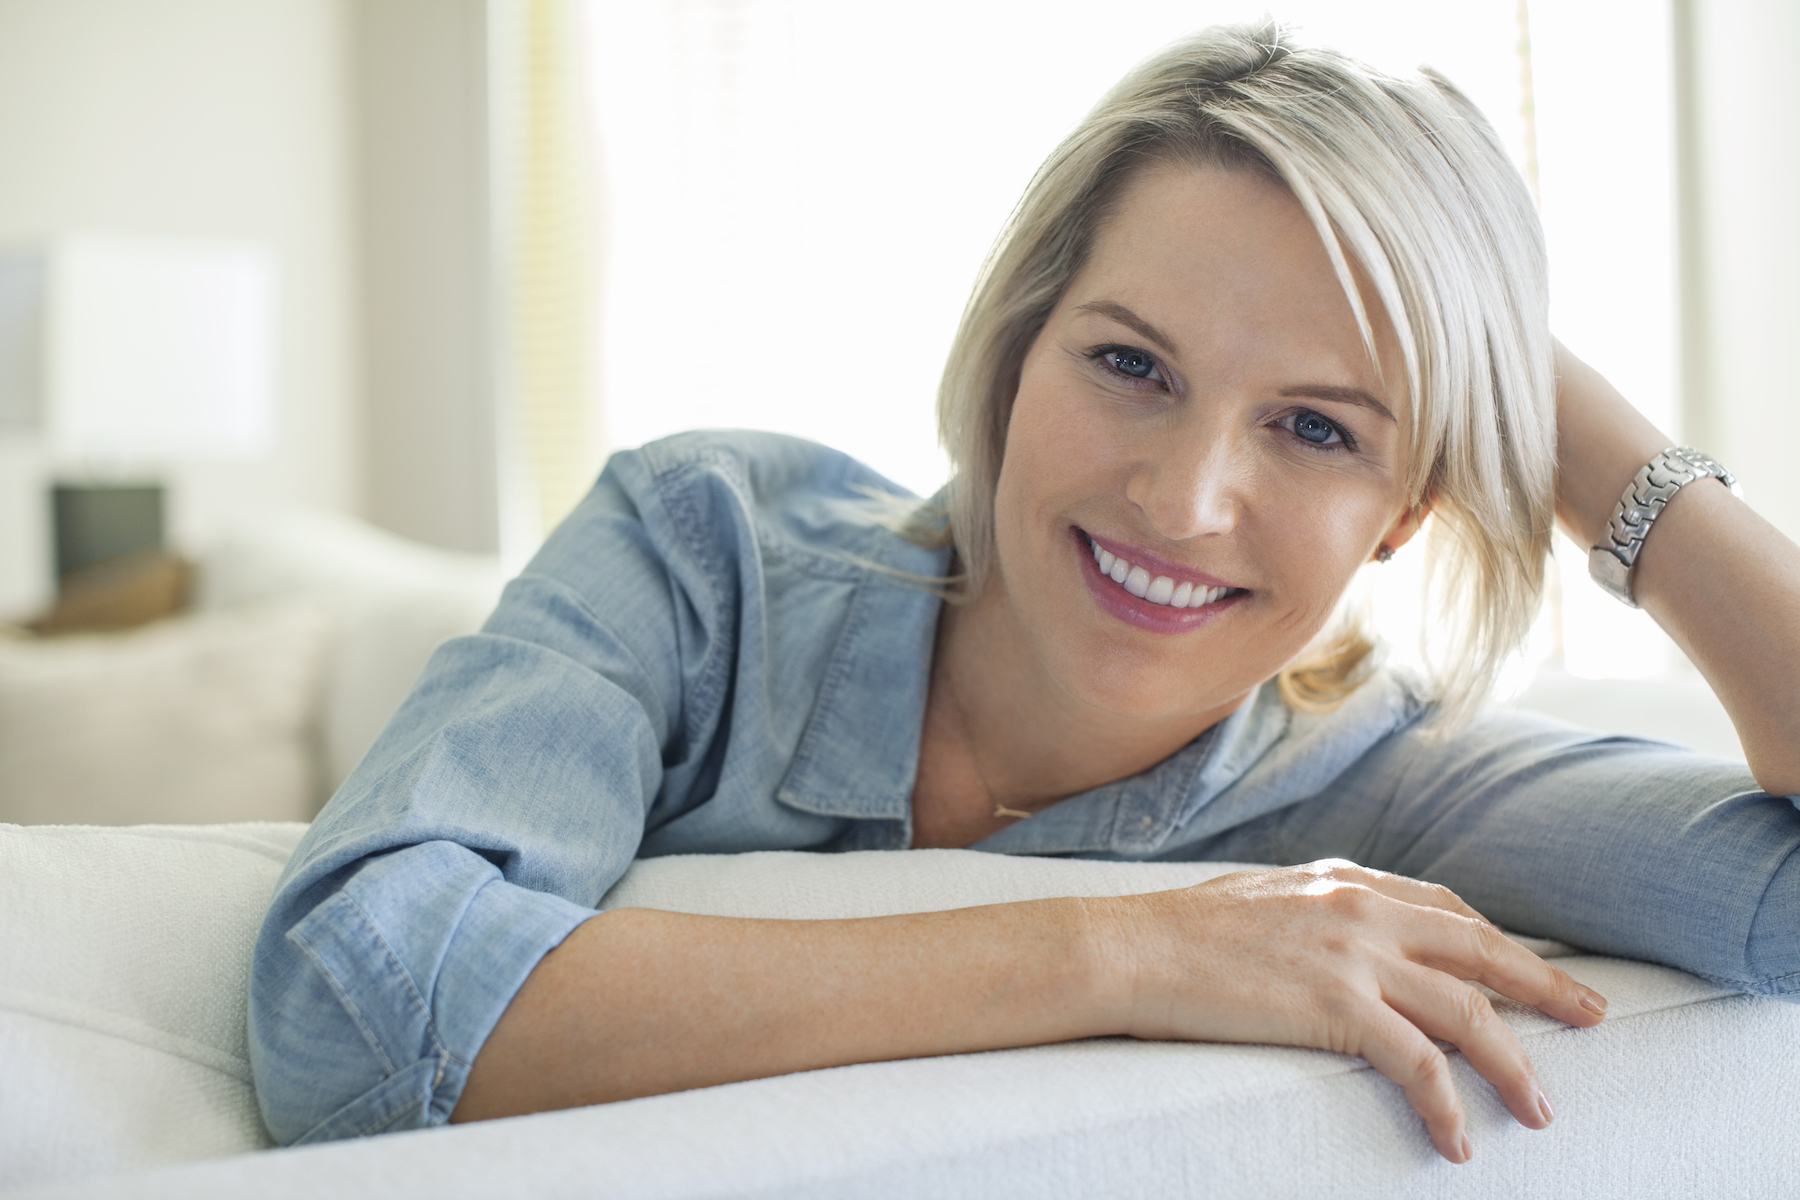 Woman with Ash Blond hair on couch